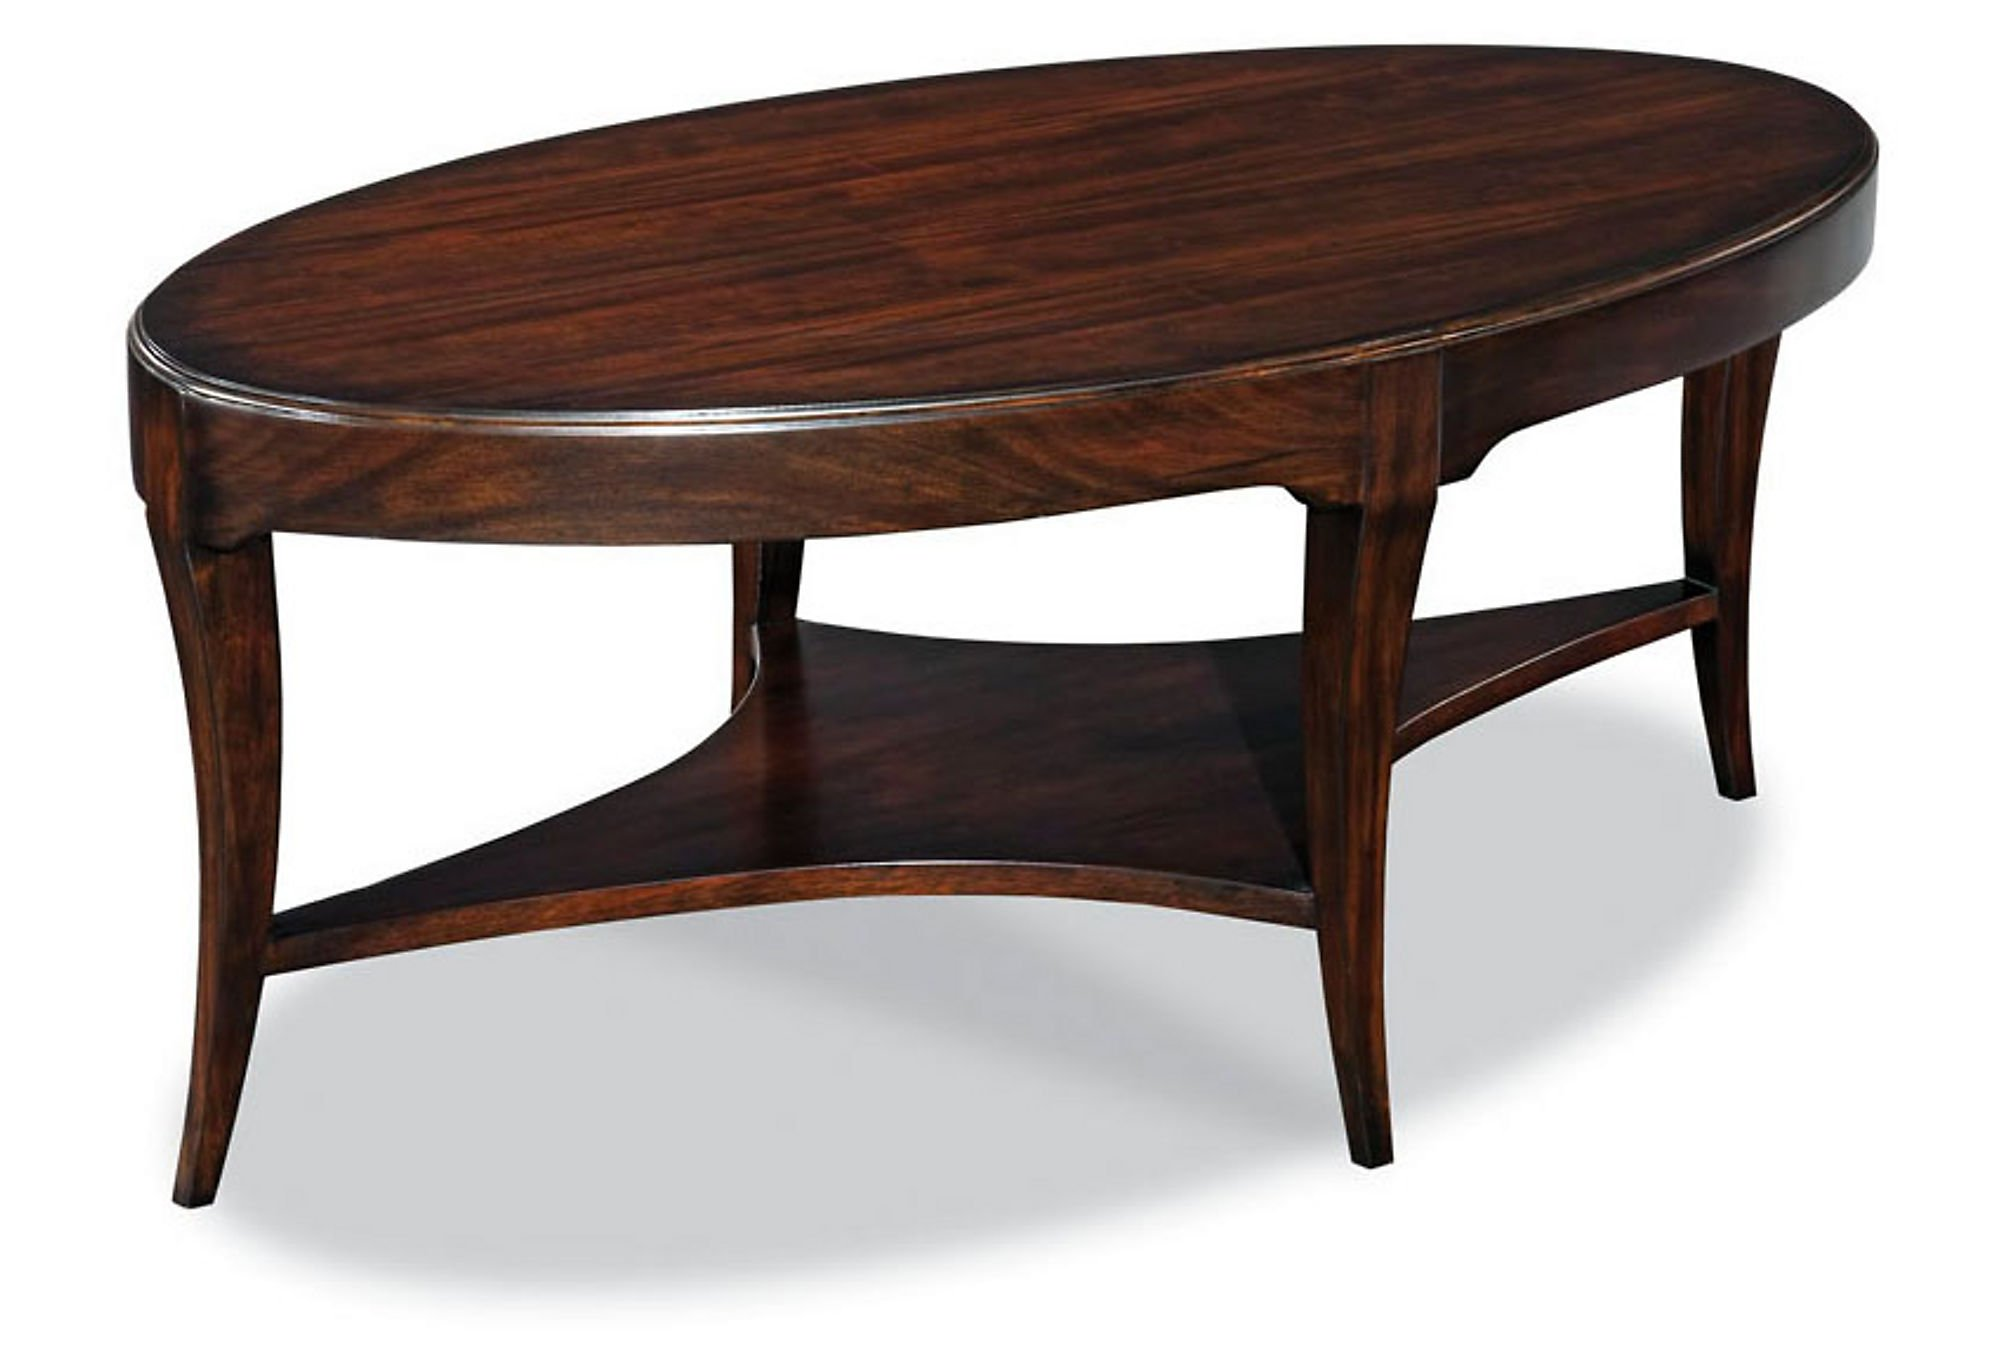 Branton Coffee Table by Uttermost